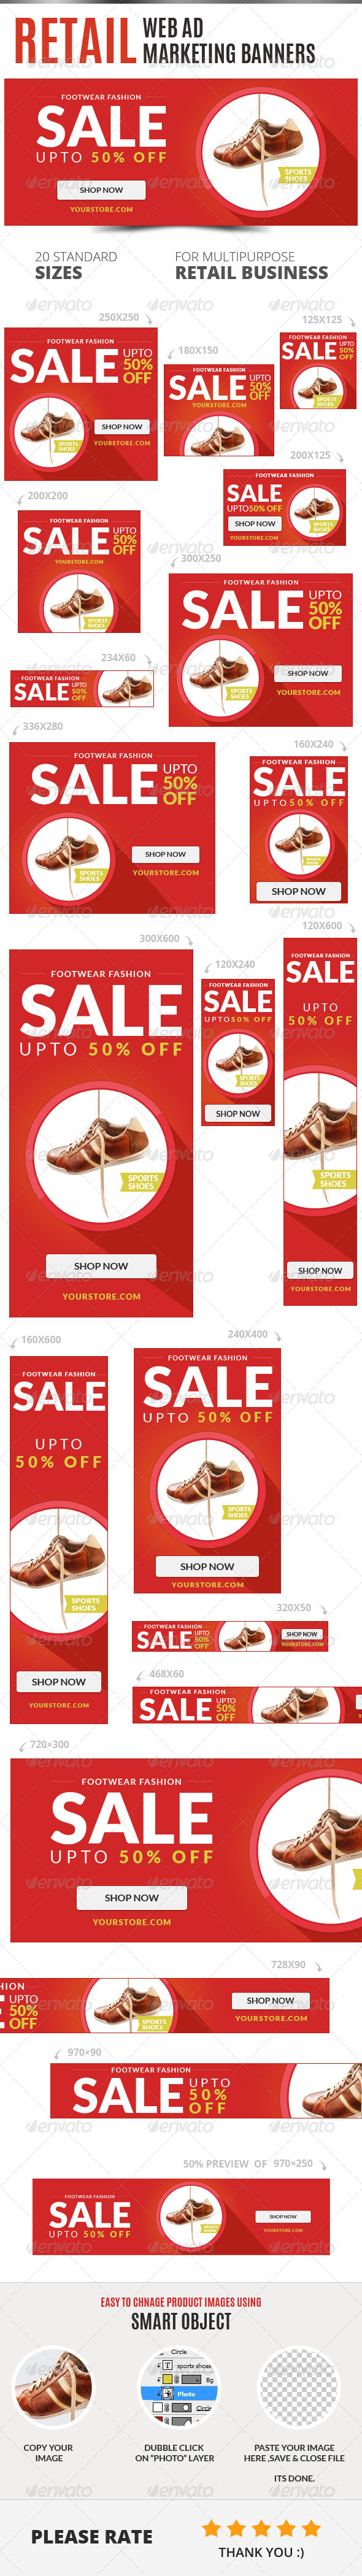 Retail Web Ad Marketing Banners - Banners & Ads Web Elements